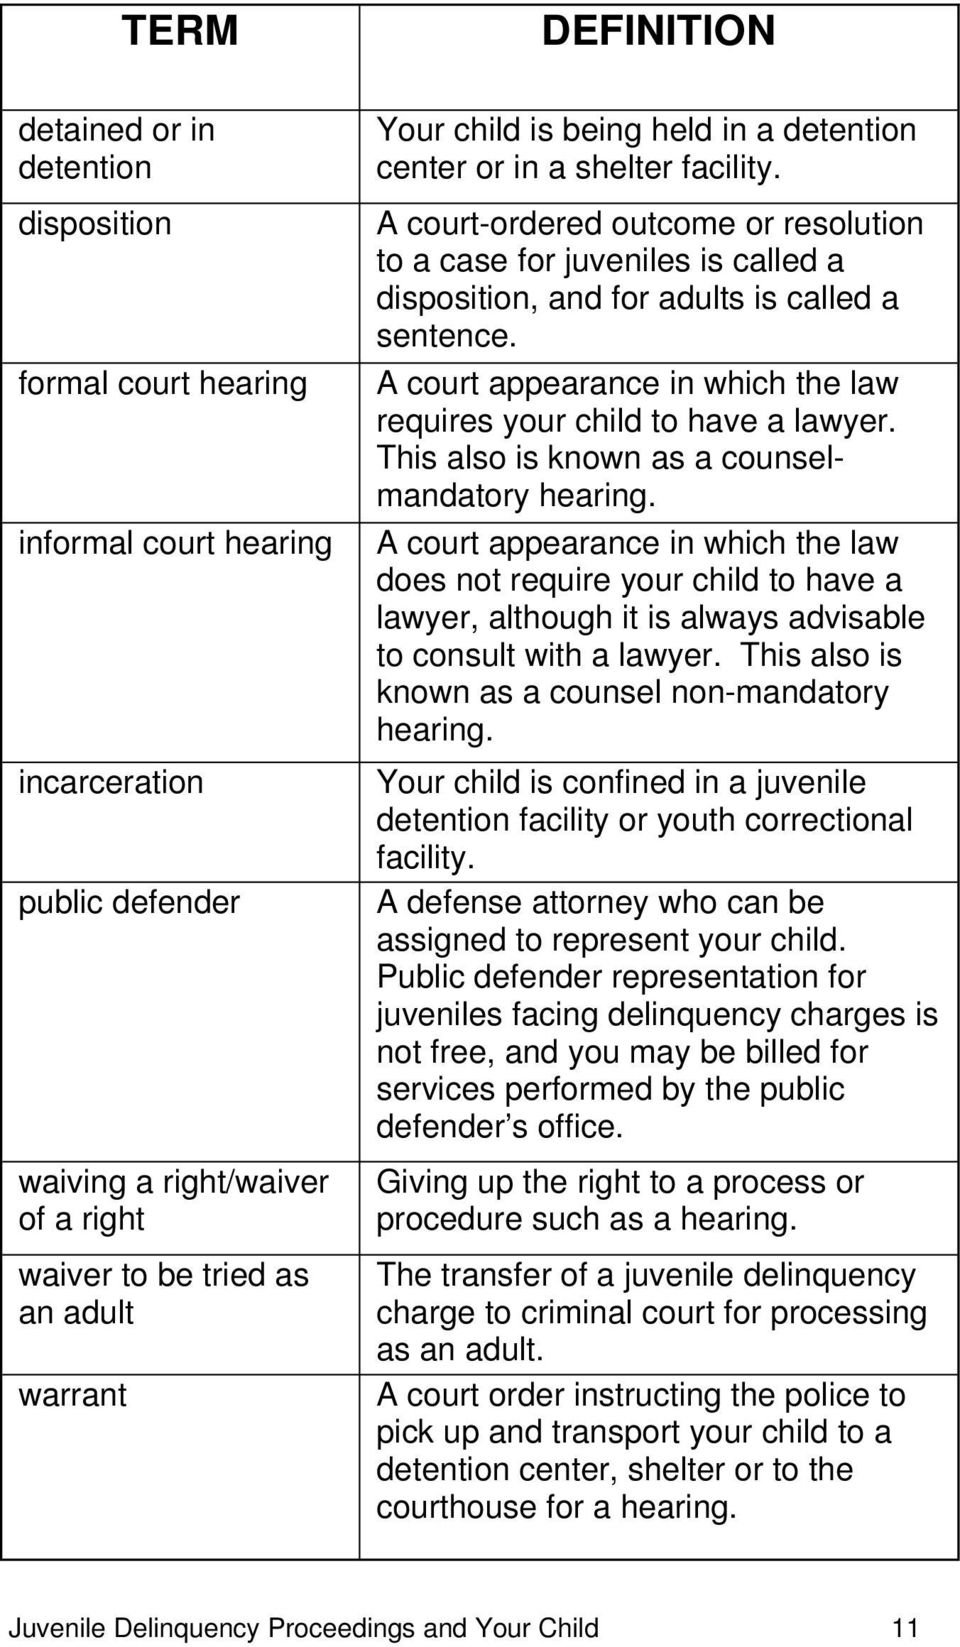 A court appearance in which the law requires your child to have a lawyer. This also is known as a counselmandatory hearing.